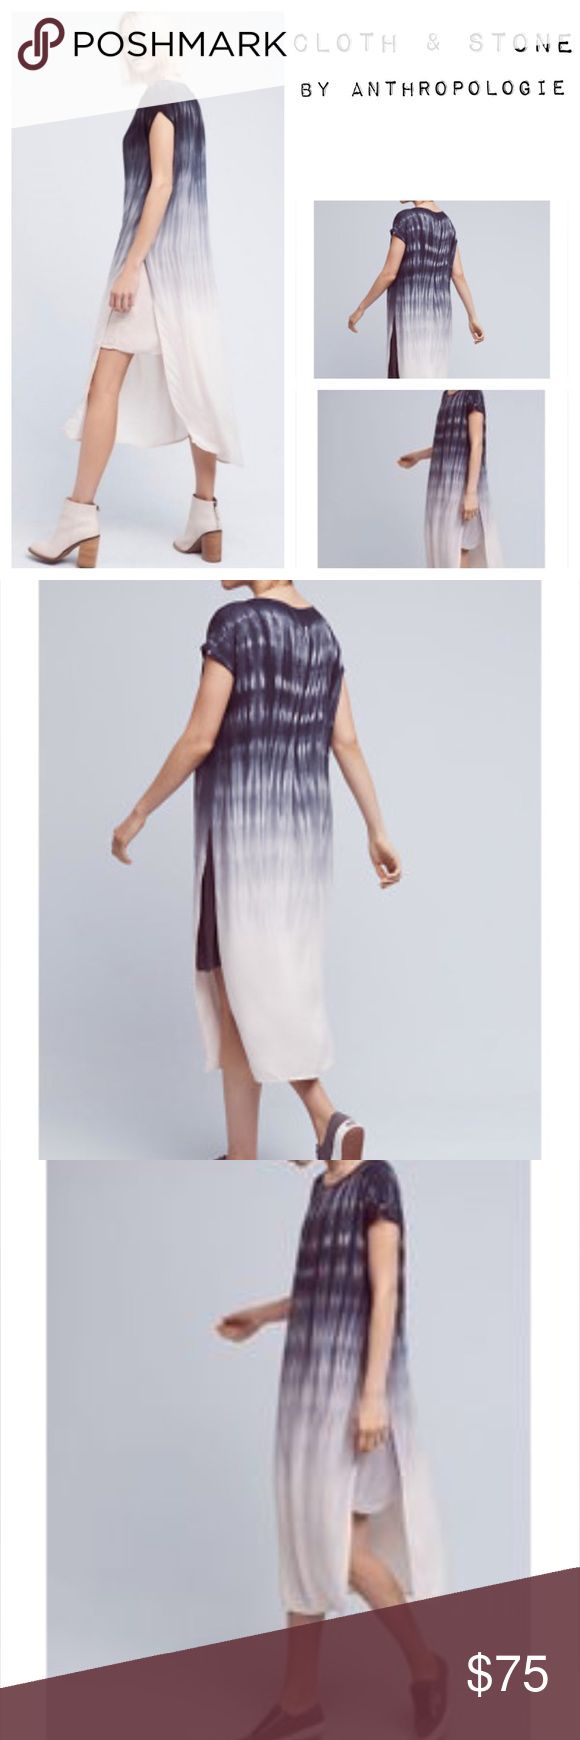 Cold & stone by anthropology tie dye fade dress Nwt long shirt stone & cold by anthropology dress with cool tie dye design. Very versatile, wear it alone or with leggings to change up the look. Petite size small. Non stretch cold & stone by anthropology Dresses